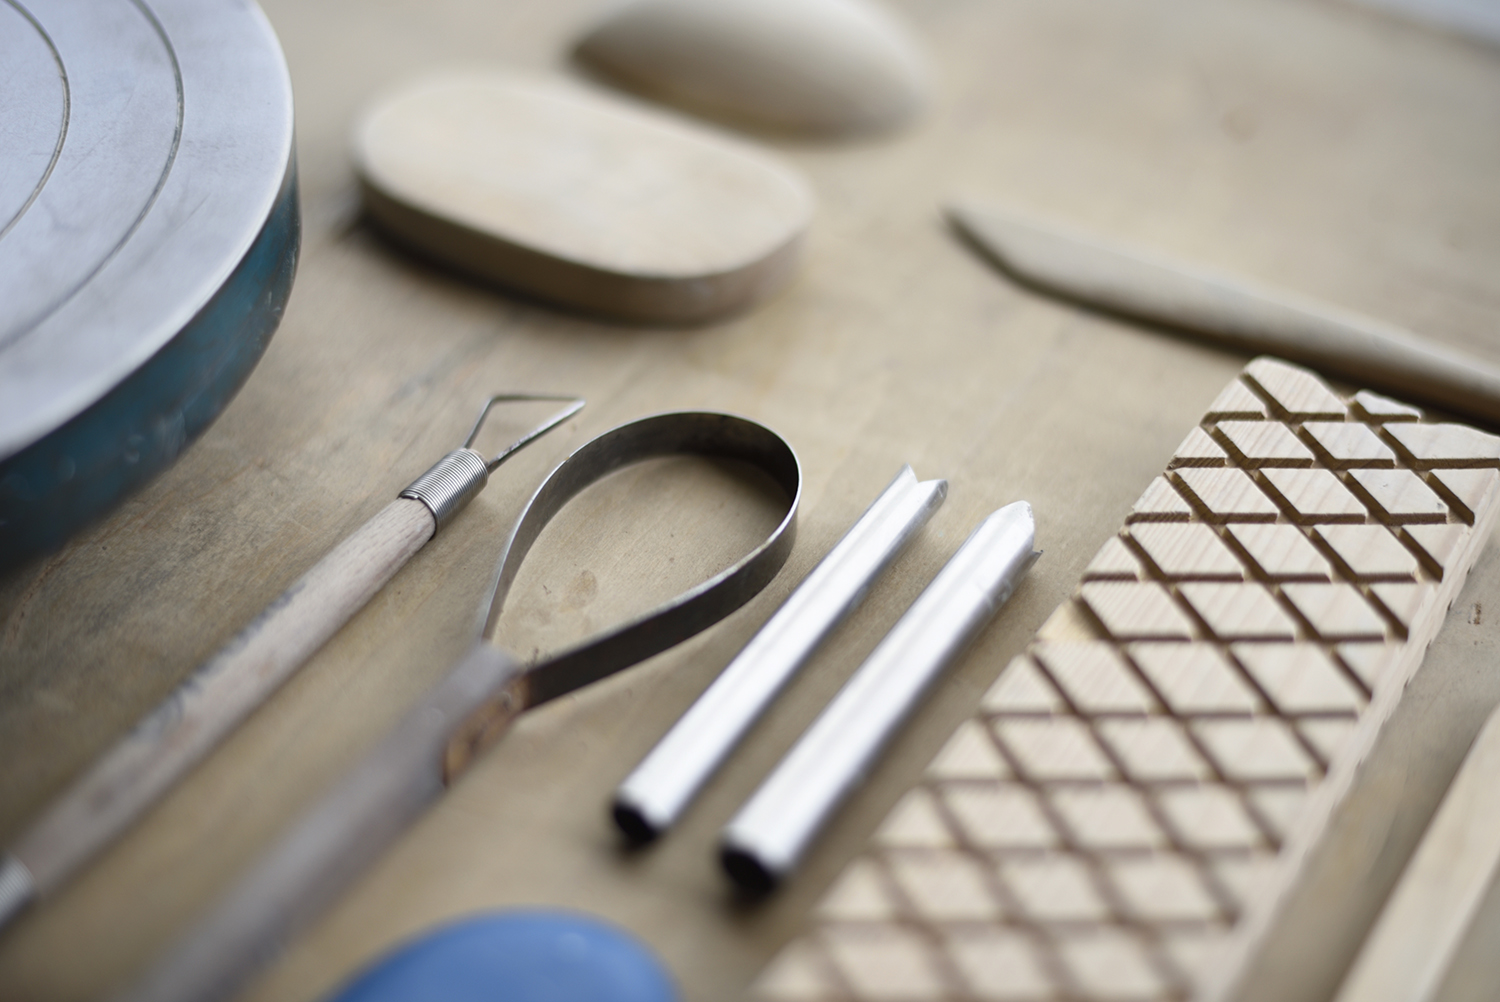 http://www.record-jp.com/class/entry_images/ceramic-tools-hp004.jpg